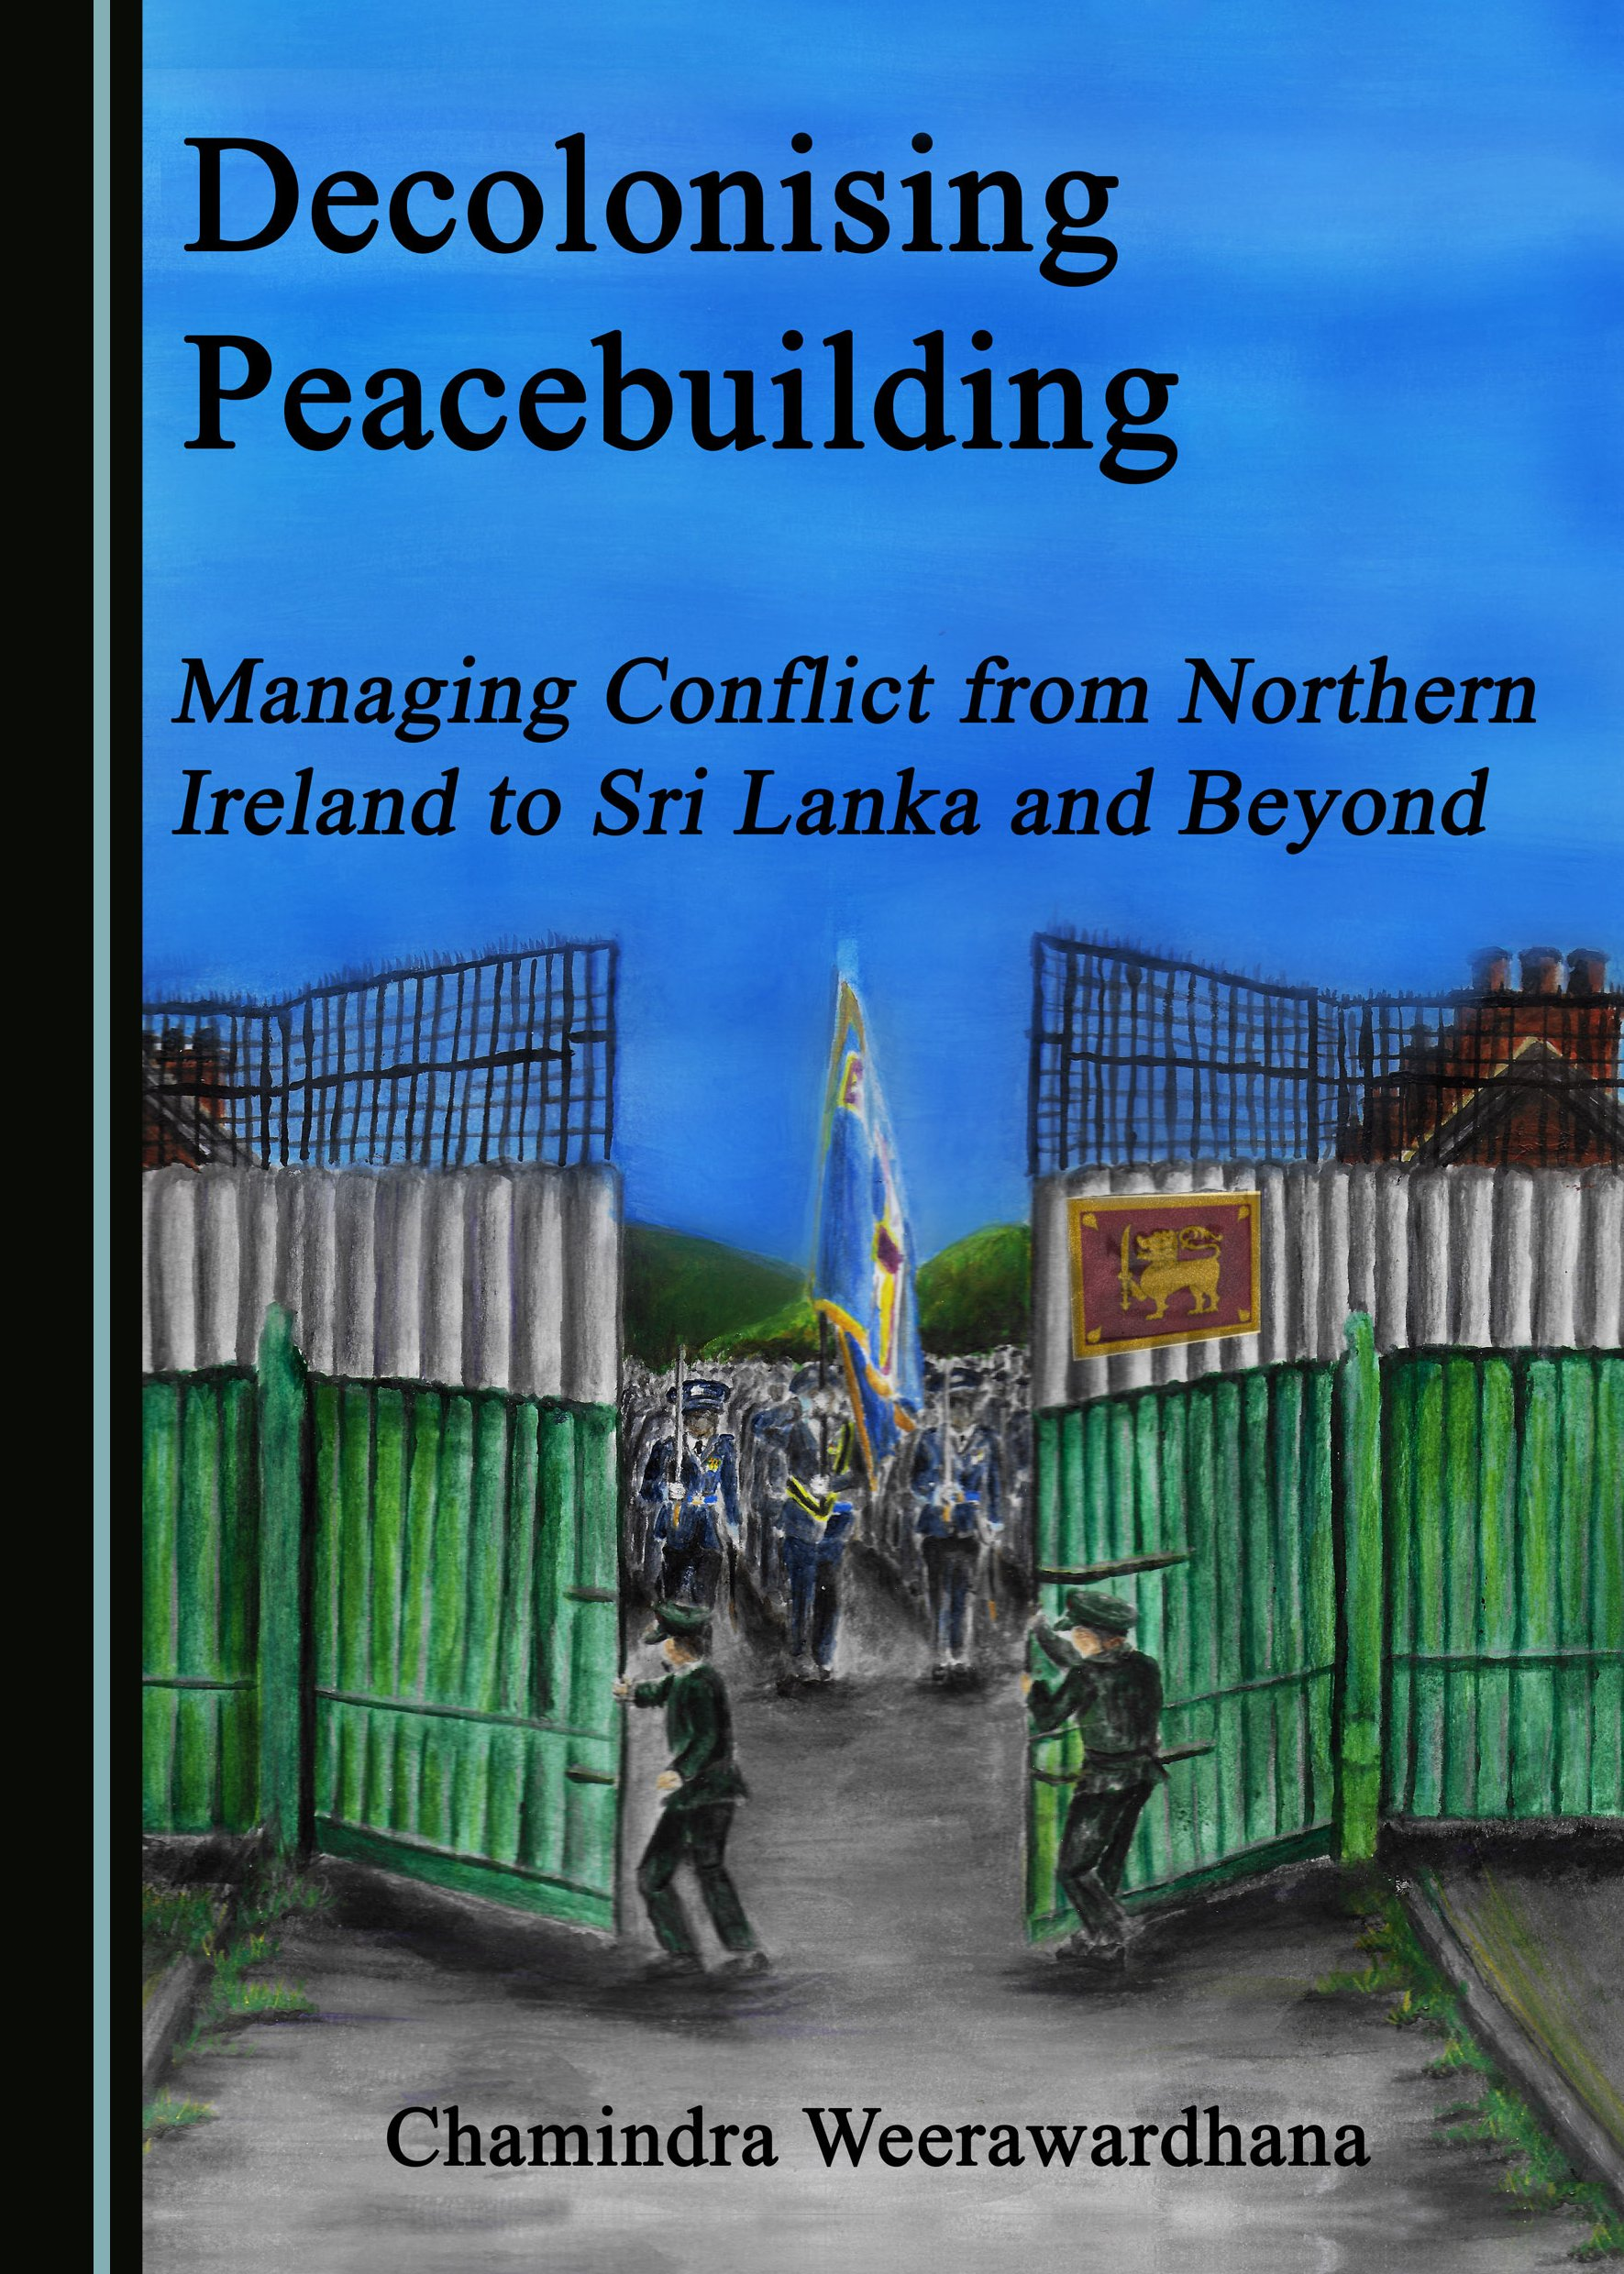 Decolonising Peacebuilding: Managing Conflict from Northern Ireland to Sri Lanka and Beyond